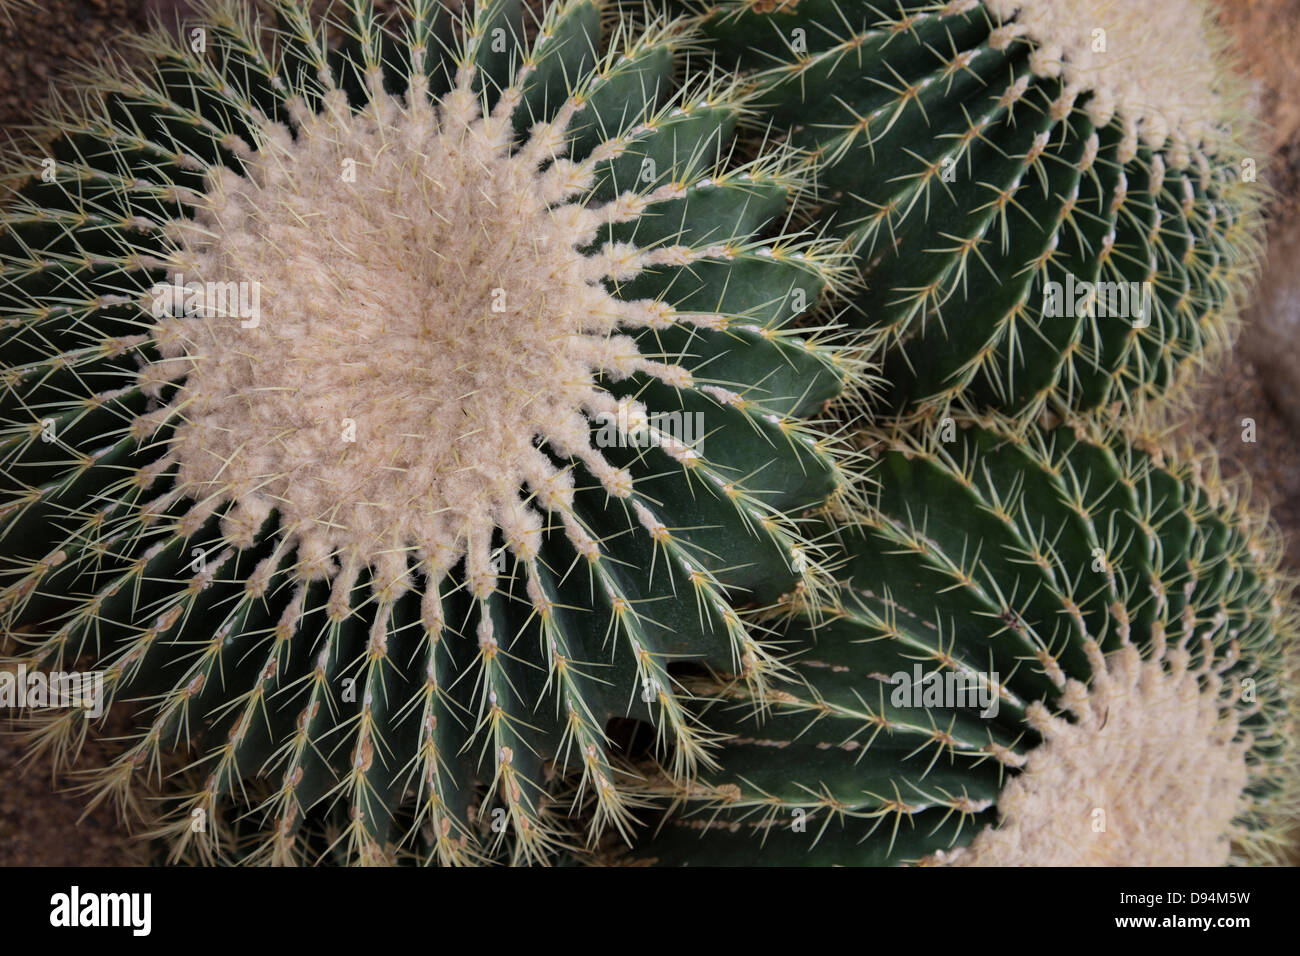 Cactus is a member of the plant family Cactaceae, within the order Caryophyllales. - Stock Image